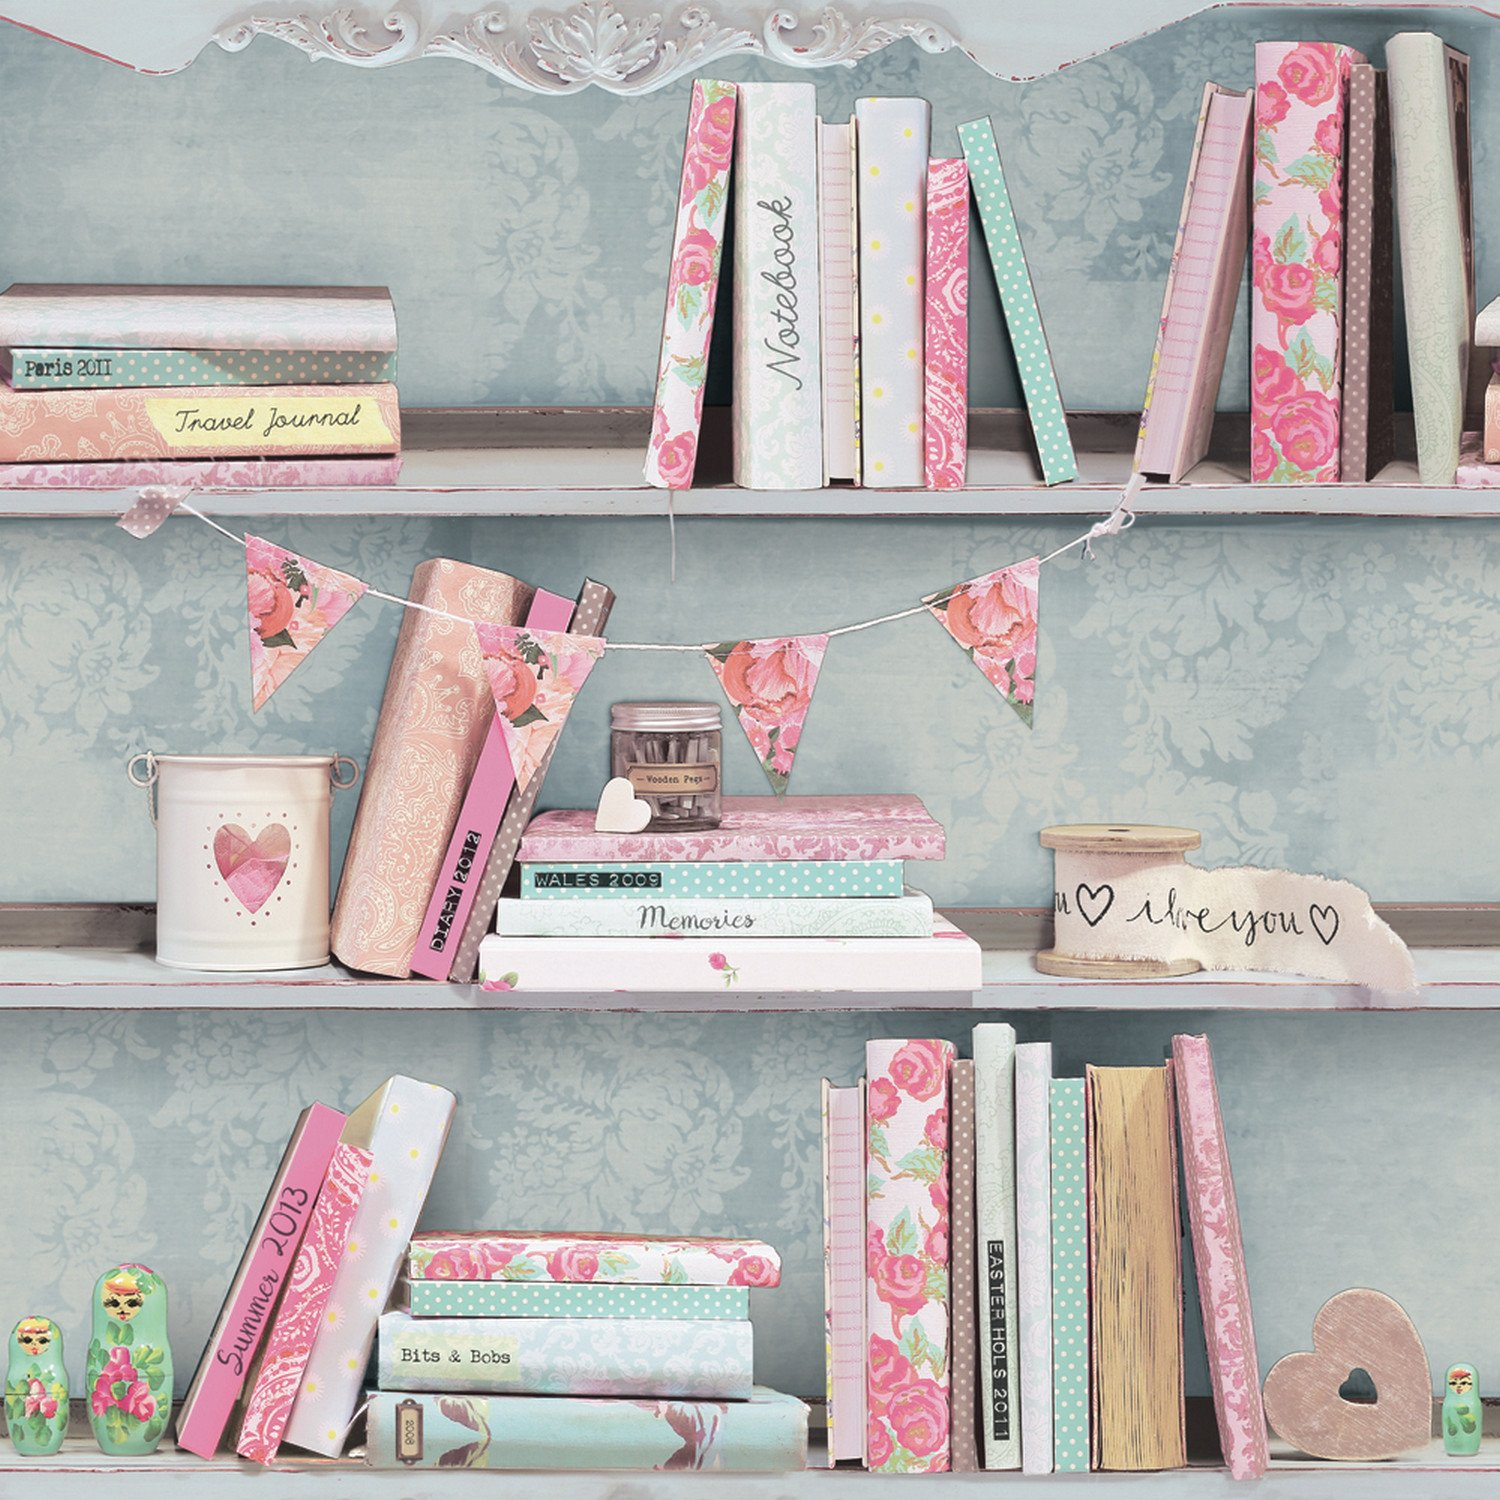 arthouse curious bookshelf effect wallpaper